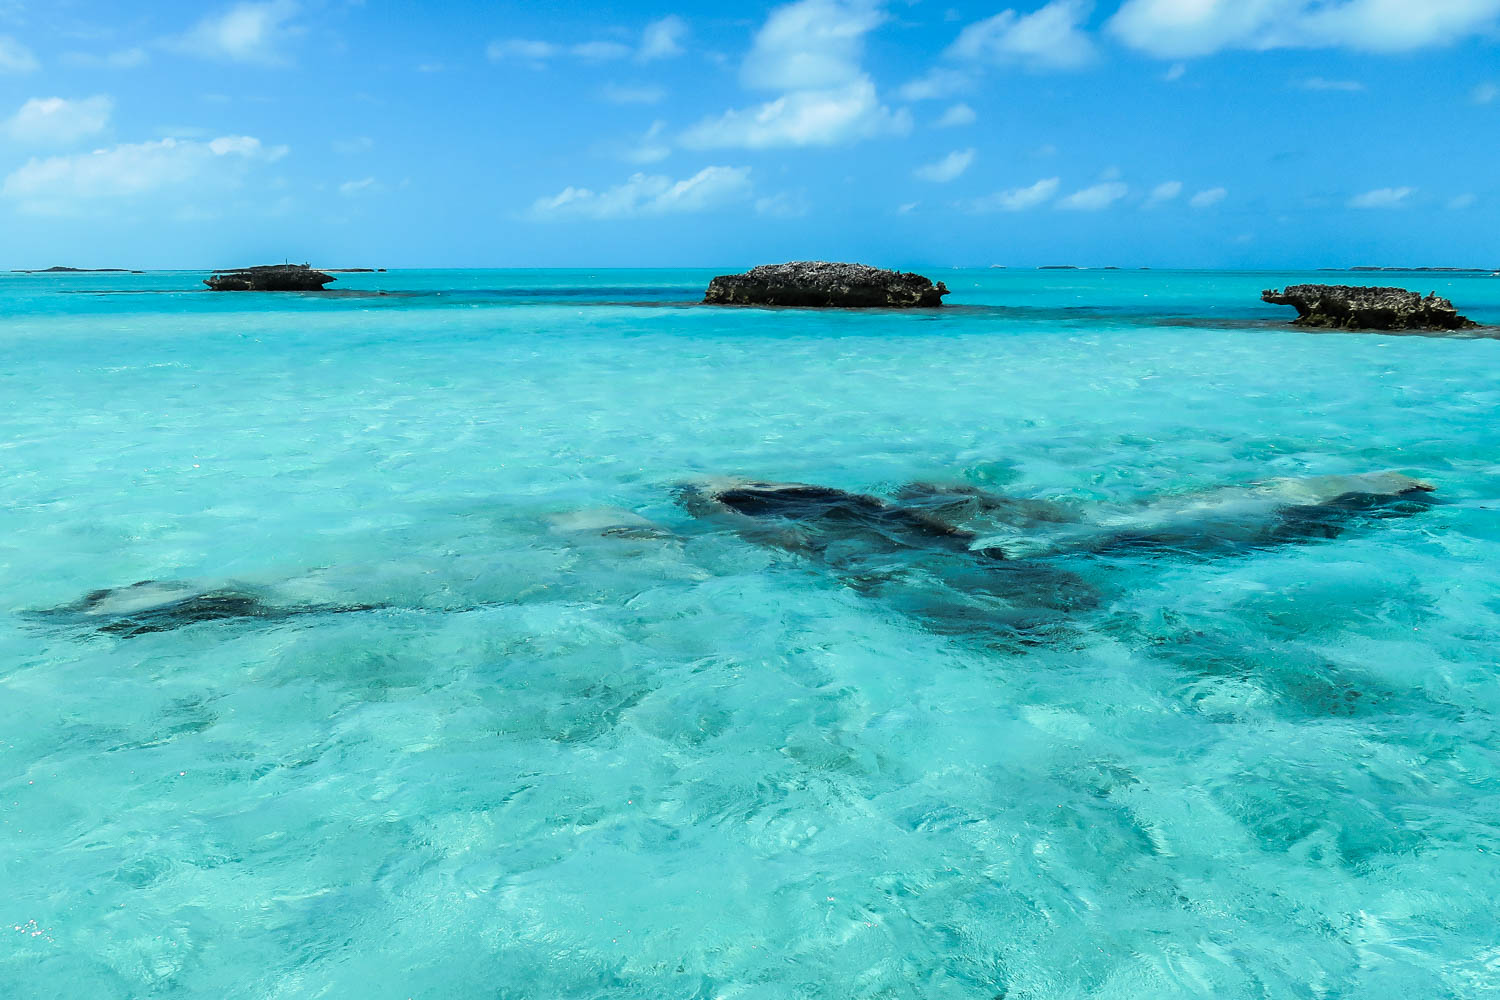 Staniel Cay Plane Wreck is an underwater plane wreck located next to Staniel Cay. This Bahamas underwater plane wreck can be easily reach by boat tour.